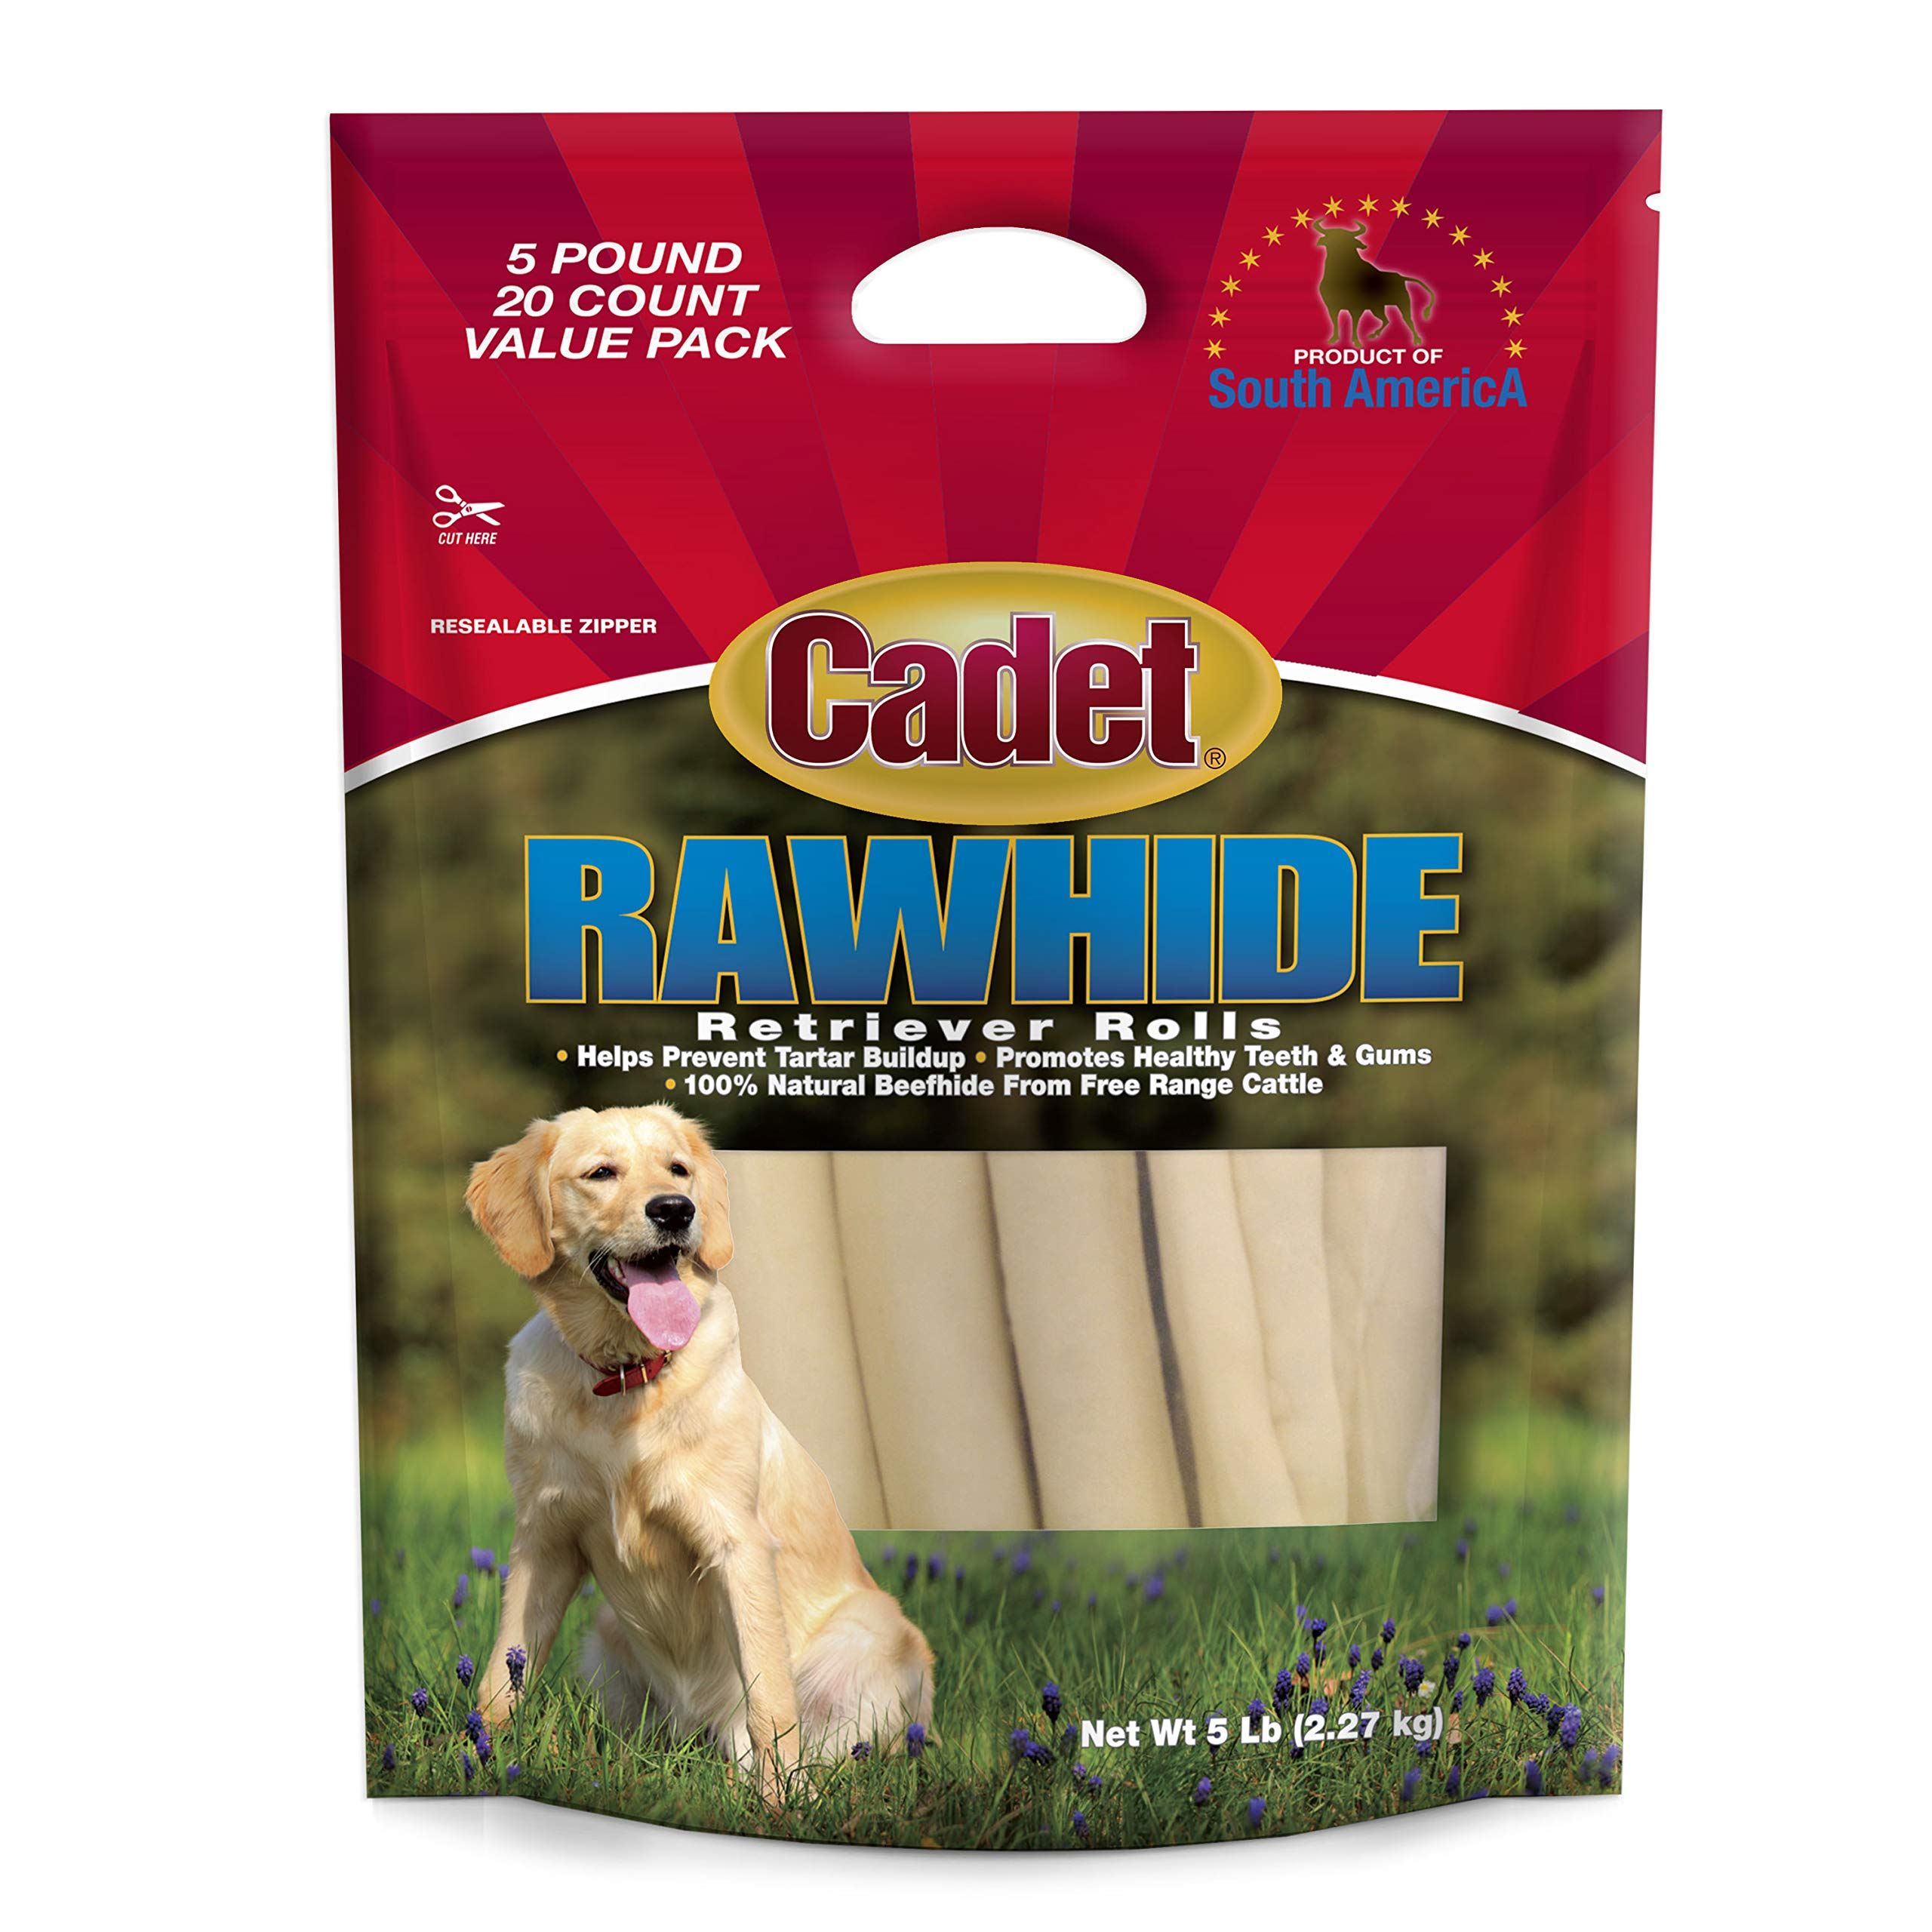 Cadet Rawhide Retriever Rolls, 100% Beef Rawhide Rolls for Dogs, 5 lb. by Cadet